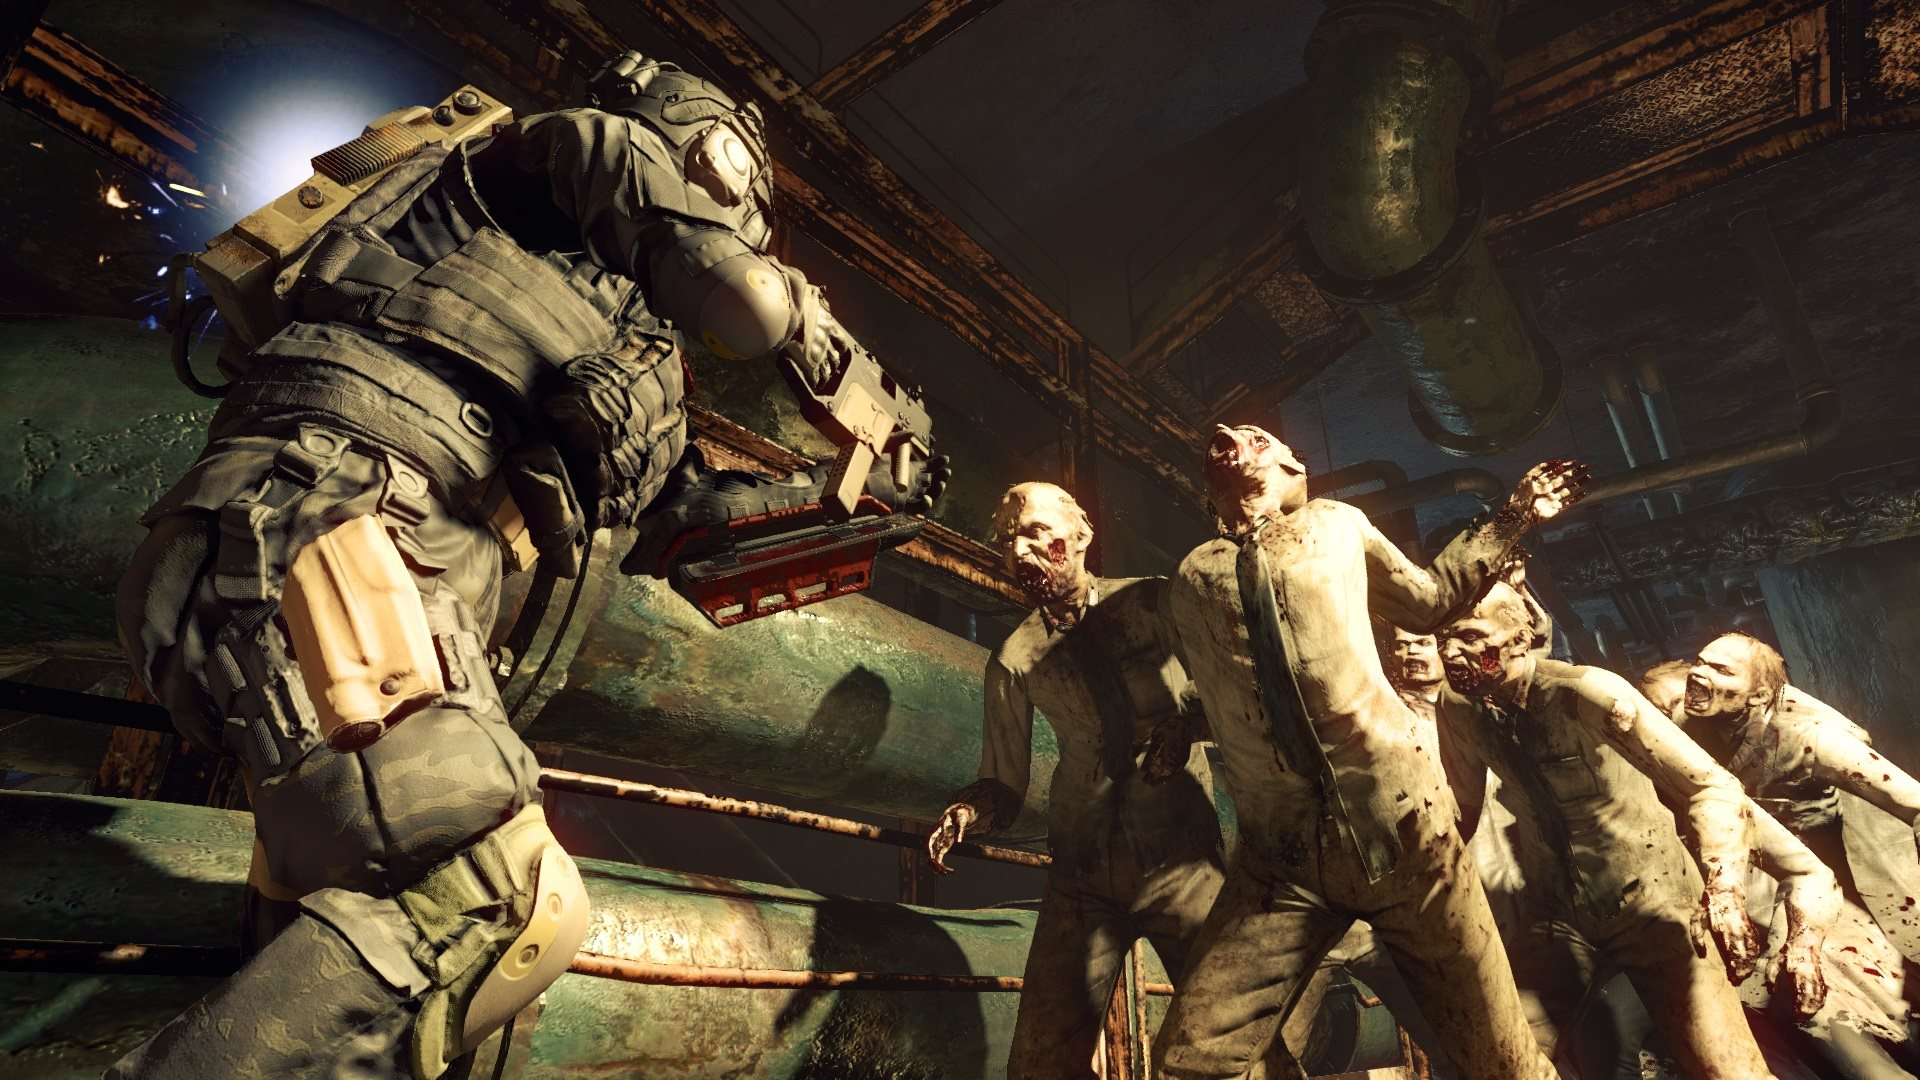 Umbrella Corps Is A Third Person Online Shooter Set In The Resident Evil Universe Pc Gamer